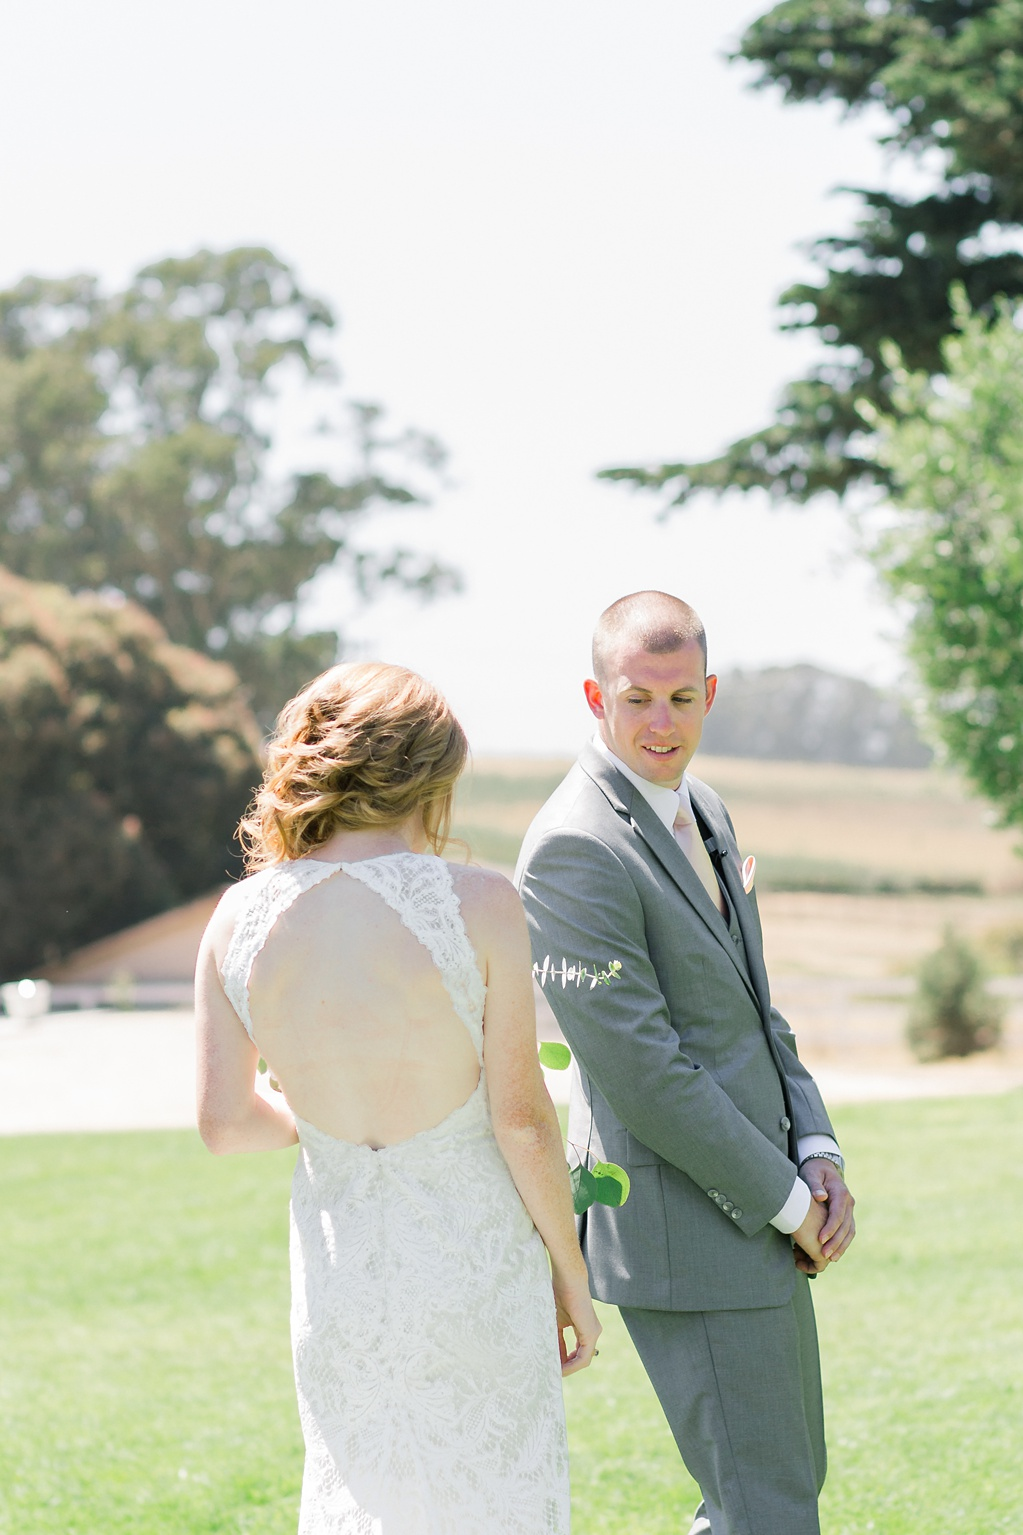 White Barn Inspired Summer Wedding In The Valley of Arroyo Grande, California by Wedding Photographer Madison Ellis (54)